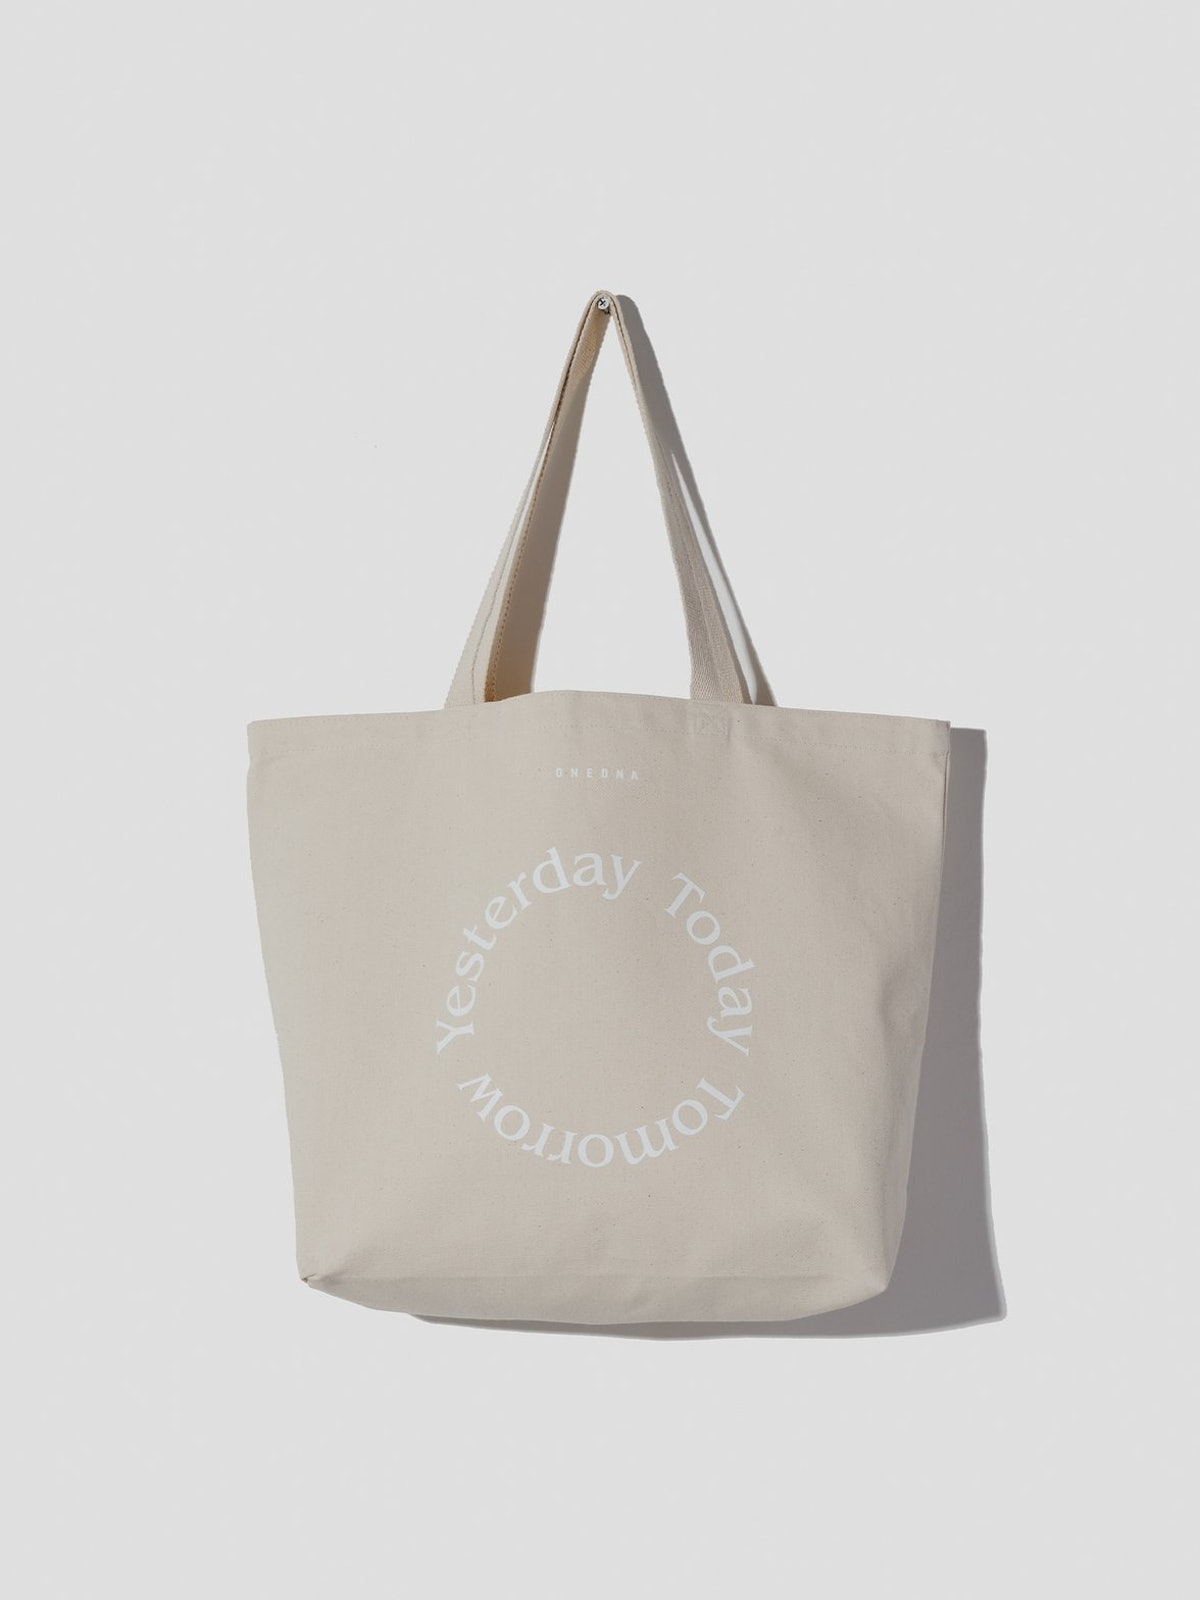 Yesterday Today Tomorrow Tote Bag, Natural Canvas